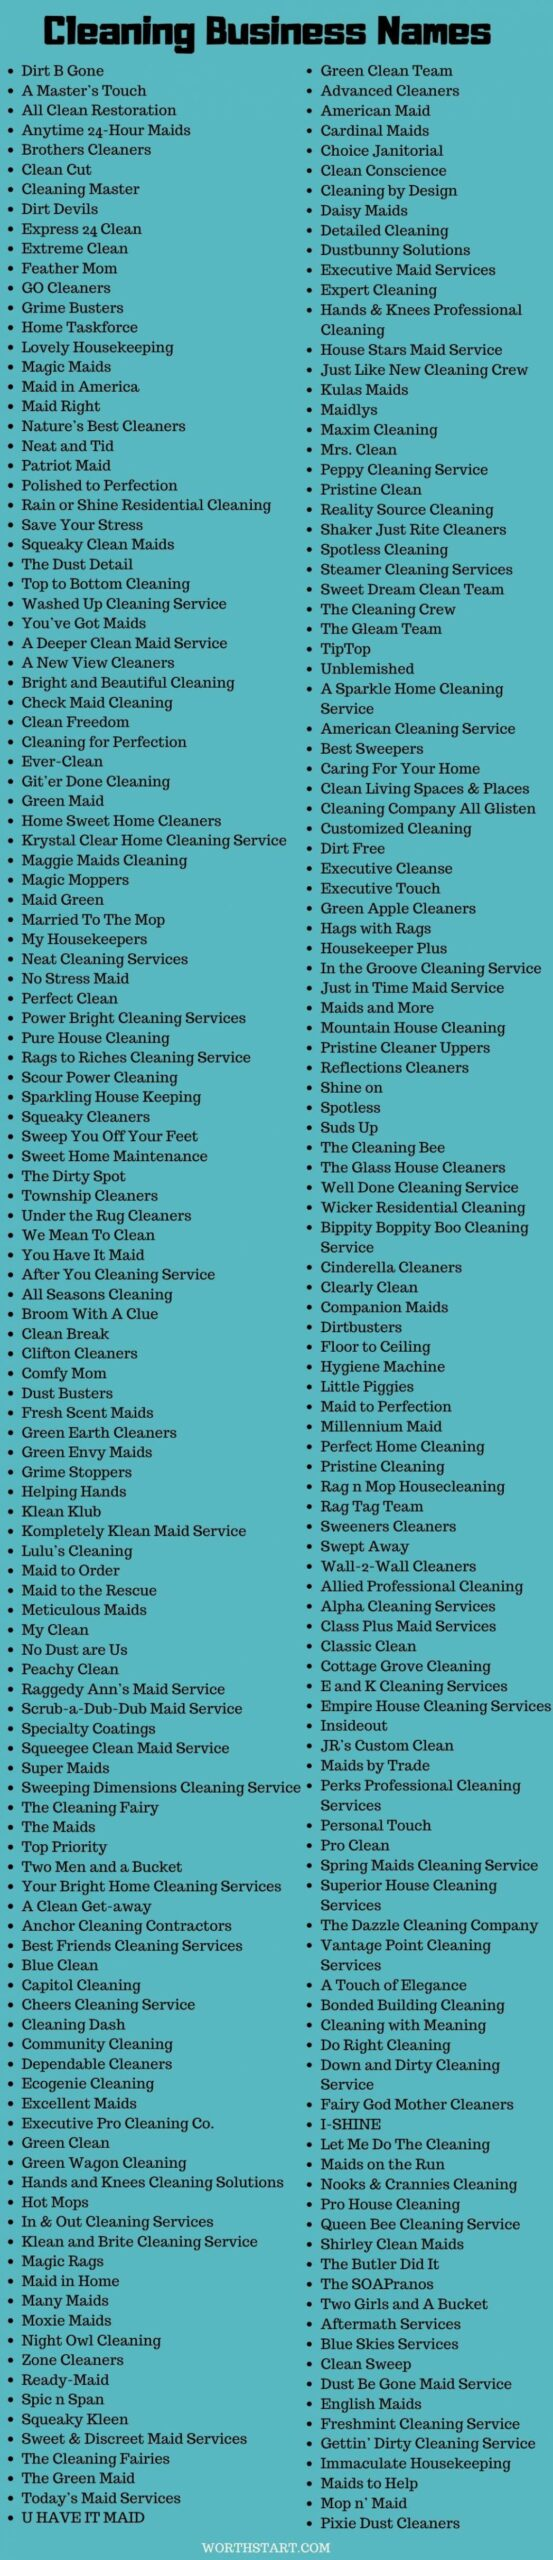 Cleaning Business Names: 9+ Cute Names for Cleaning Services